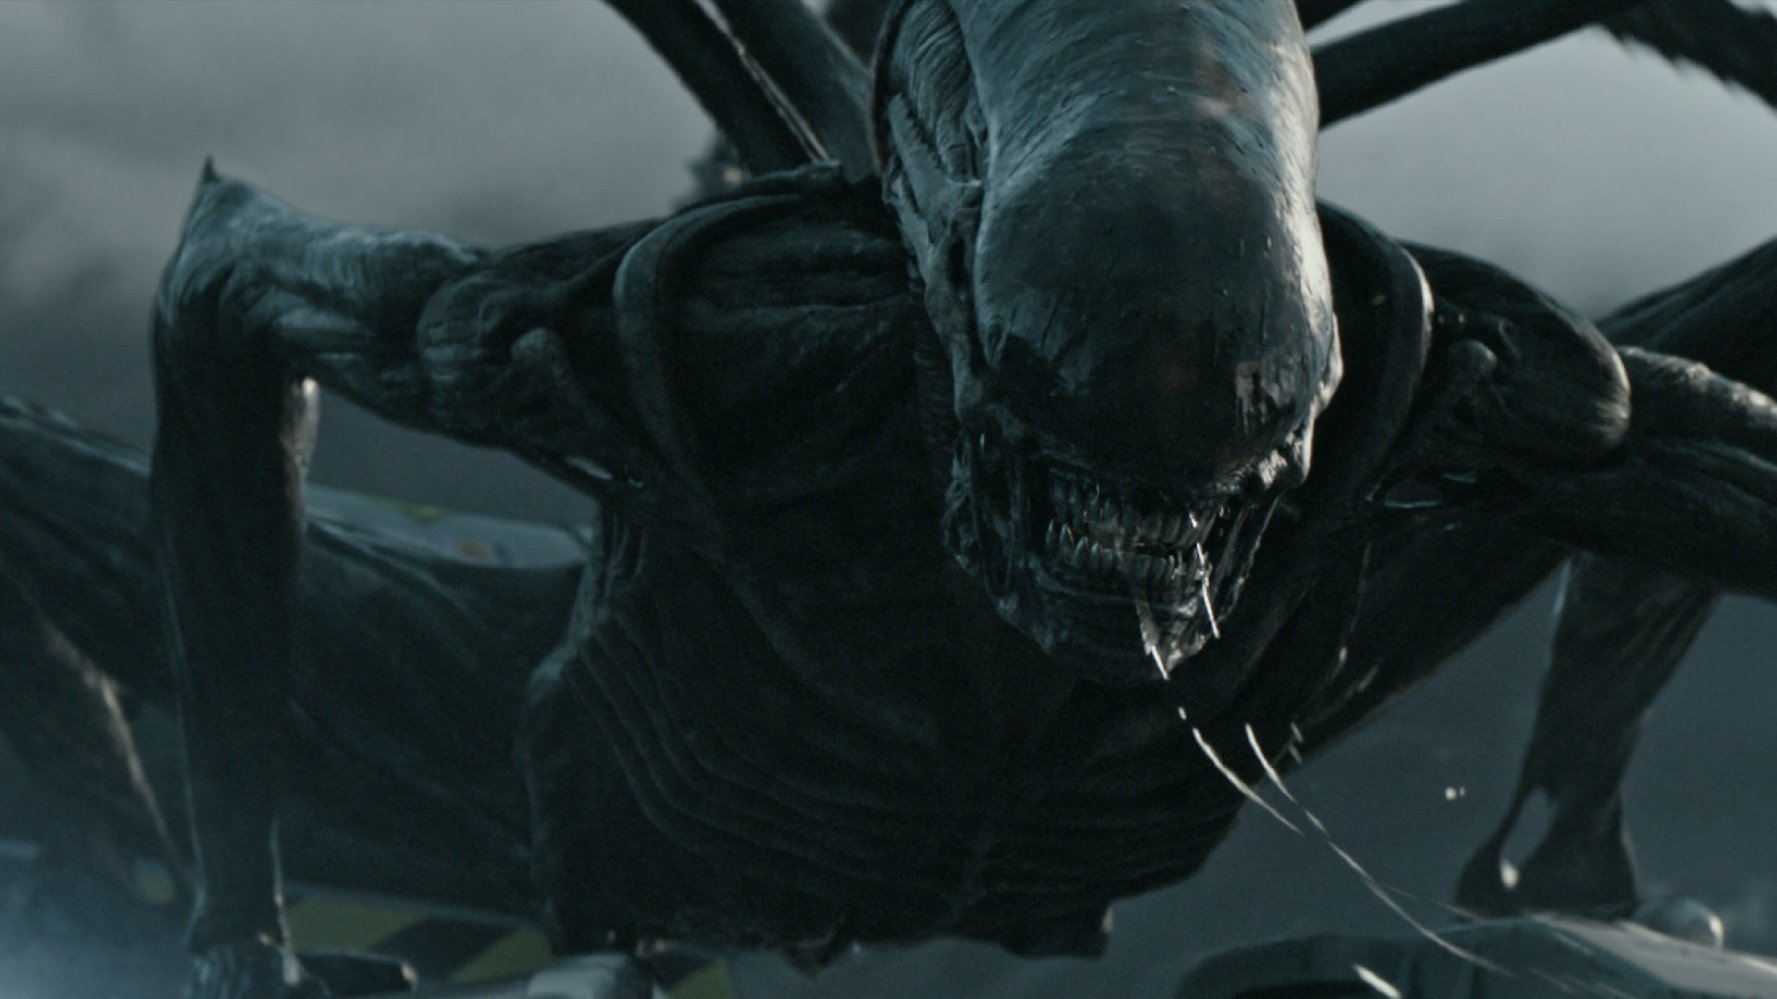 Alien: Covenant offers scares aplenty but very little substance